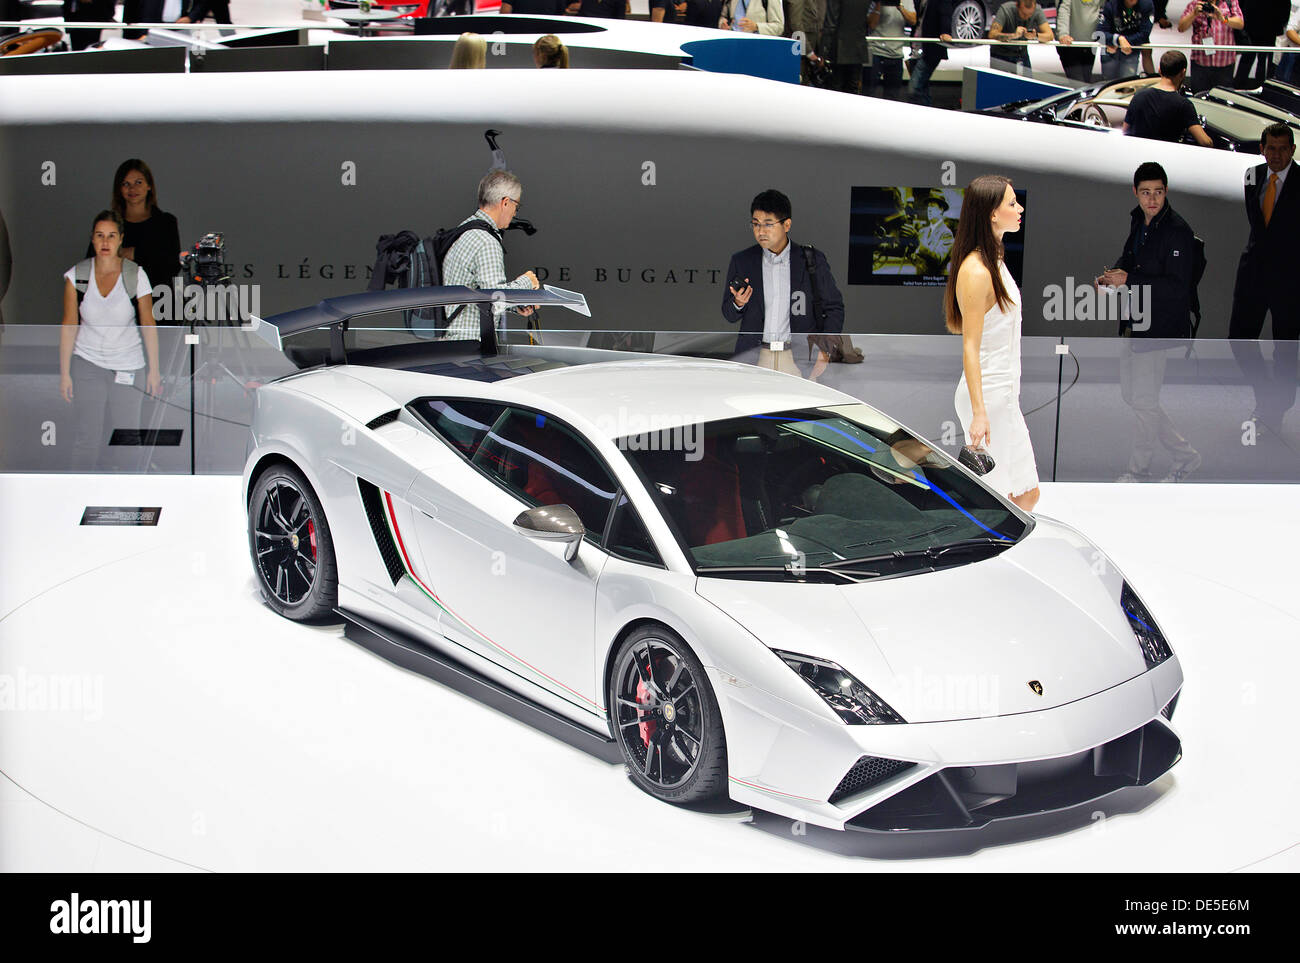 Lamborghini Gallardo LP 570 4 Squadra Corse, 65th IAA International Motor  Show In Frankfurt/Main